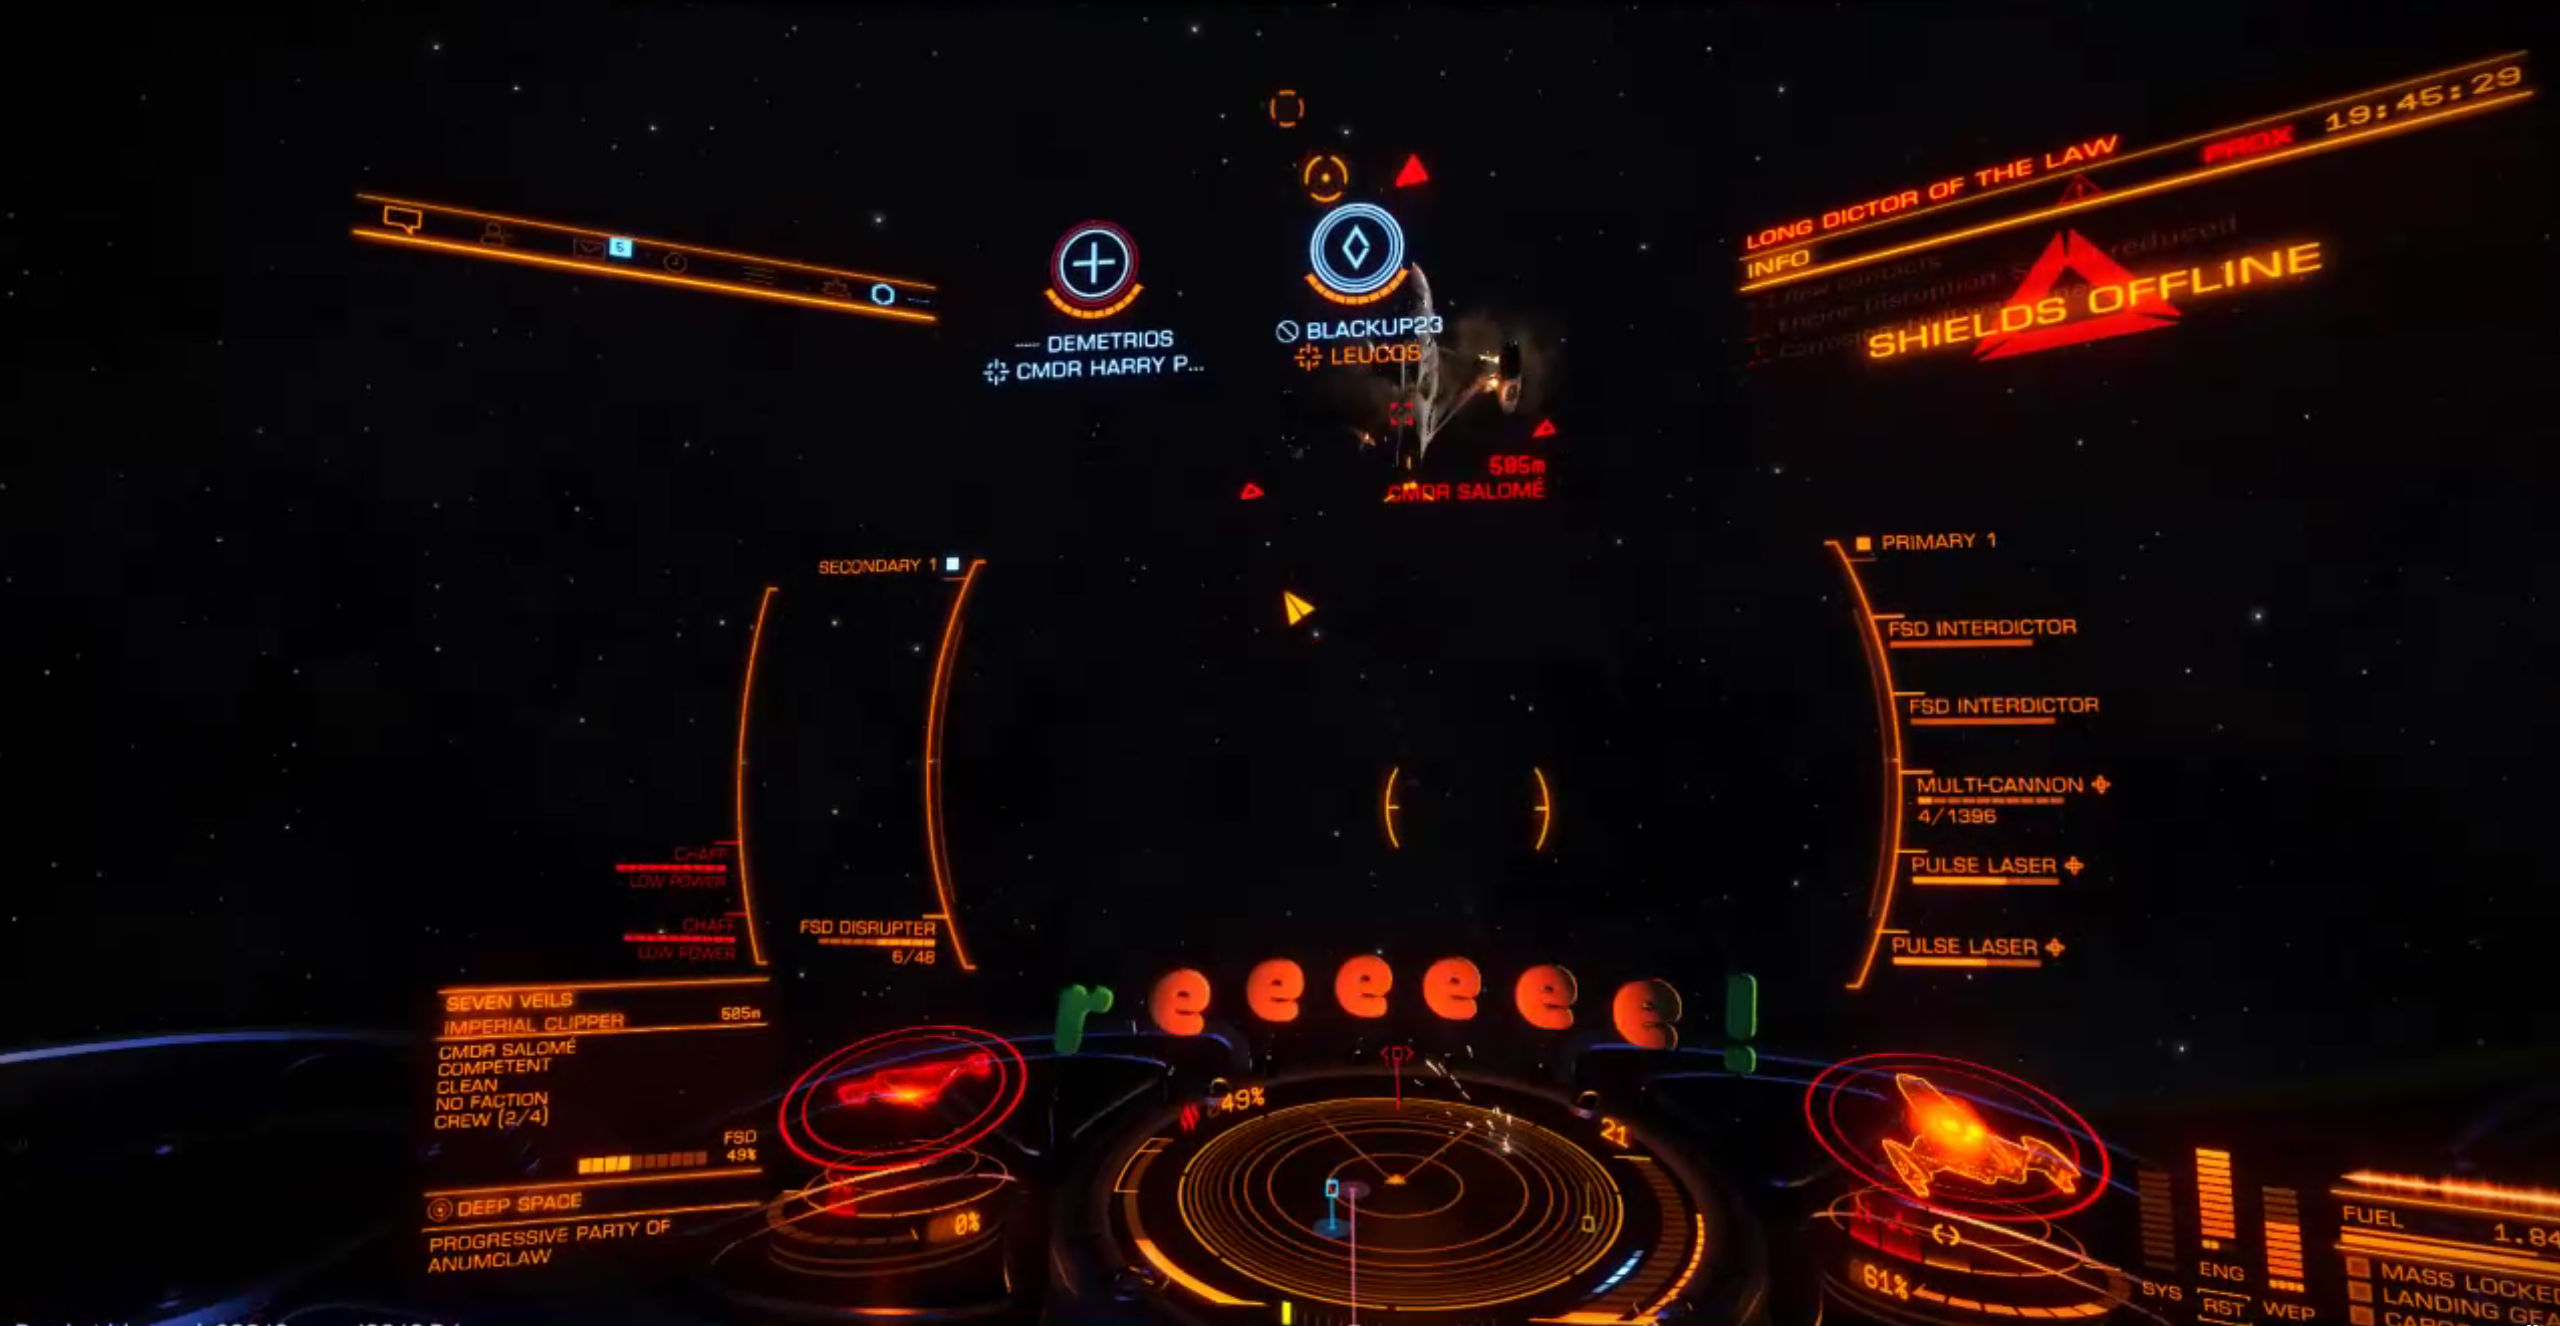 A screengrab from Cmdr. Harry Potter's Twitch stream, seconds before Salomé's ship explodes.